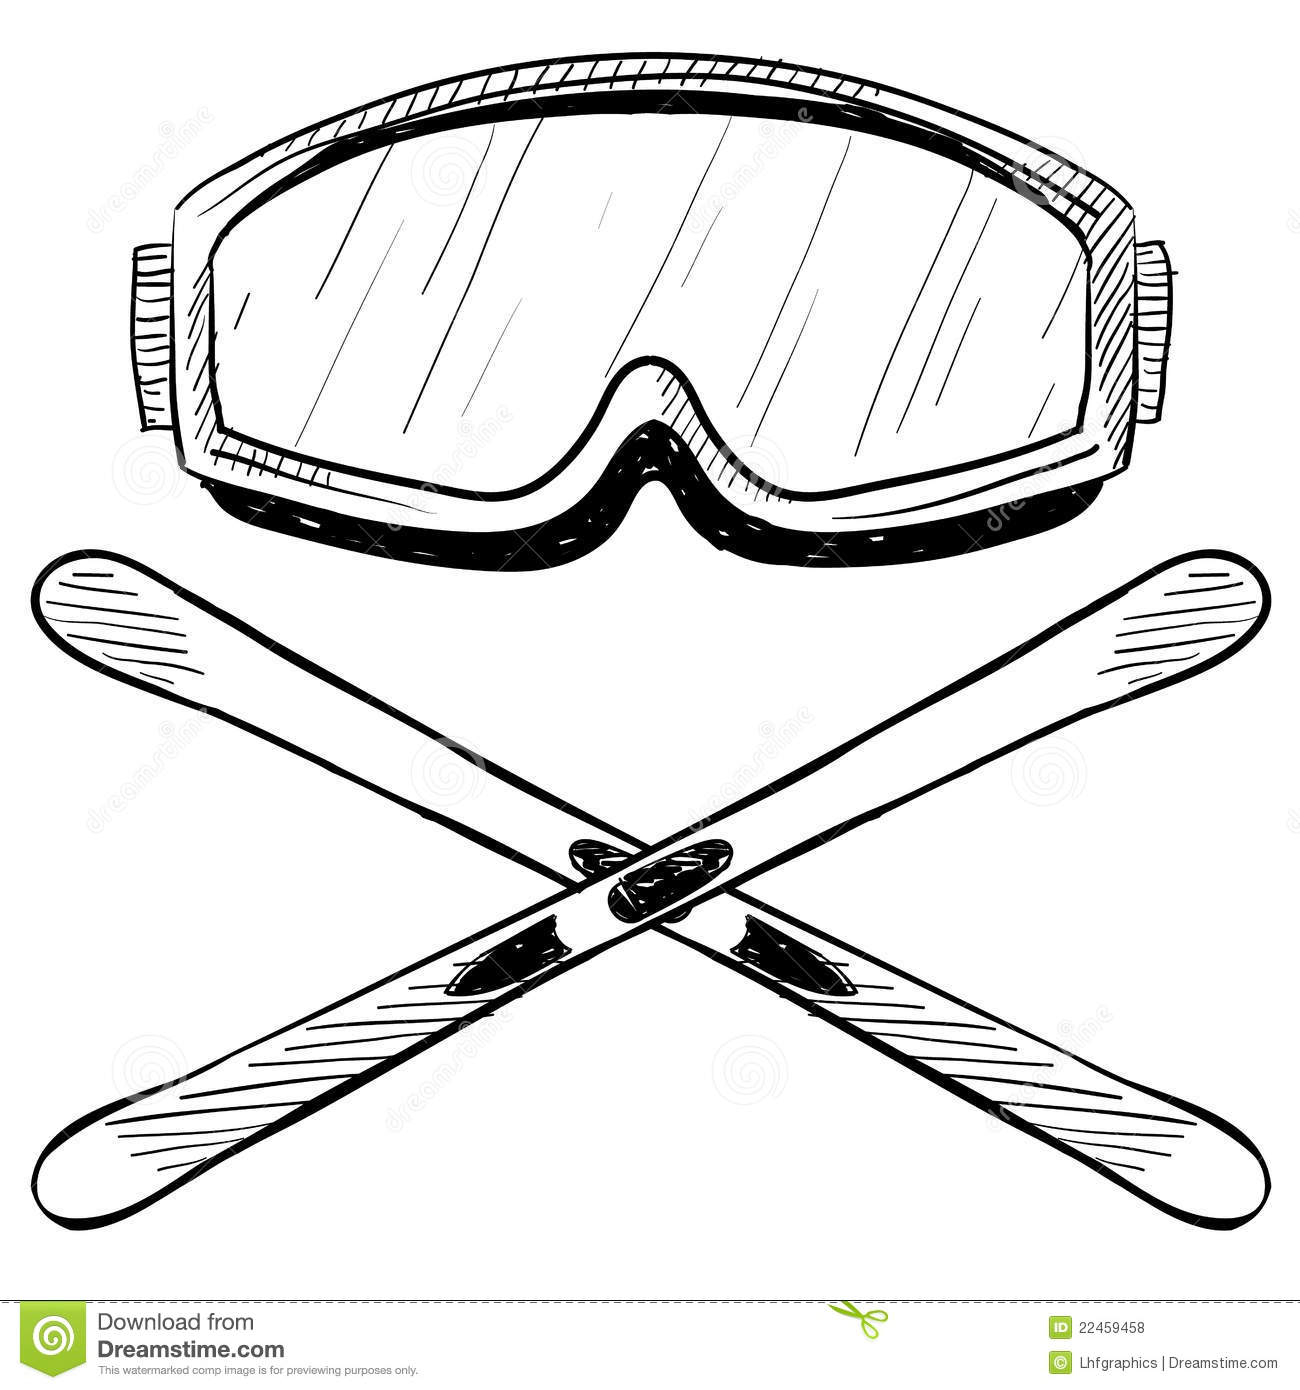 Water skiing gear drawing stock vector. Illustration of